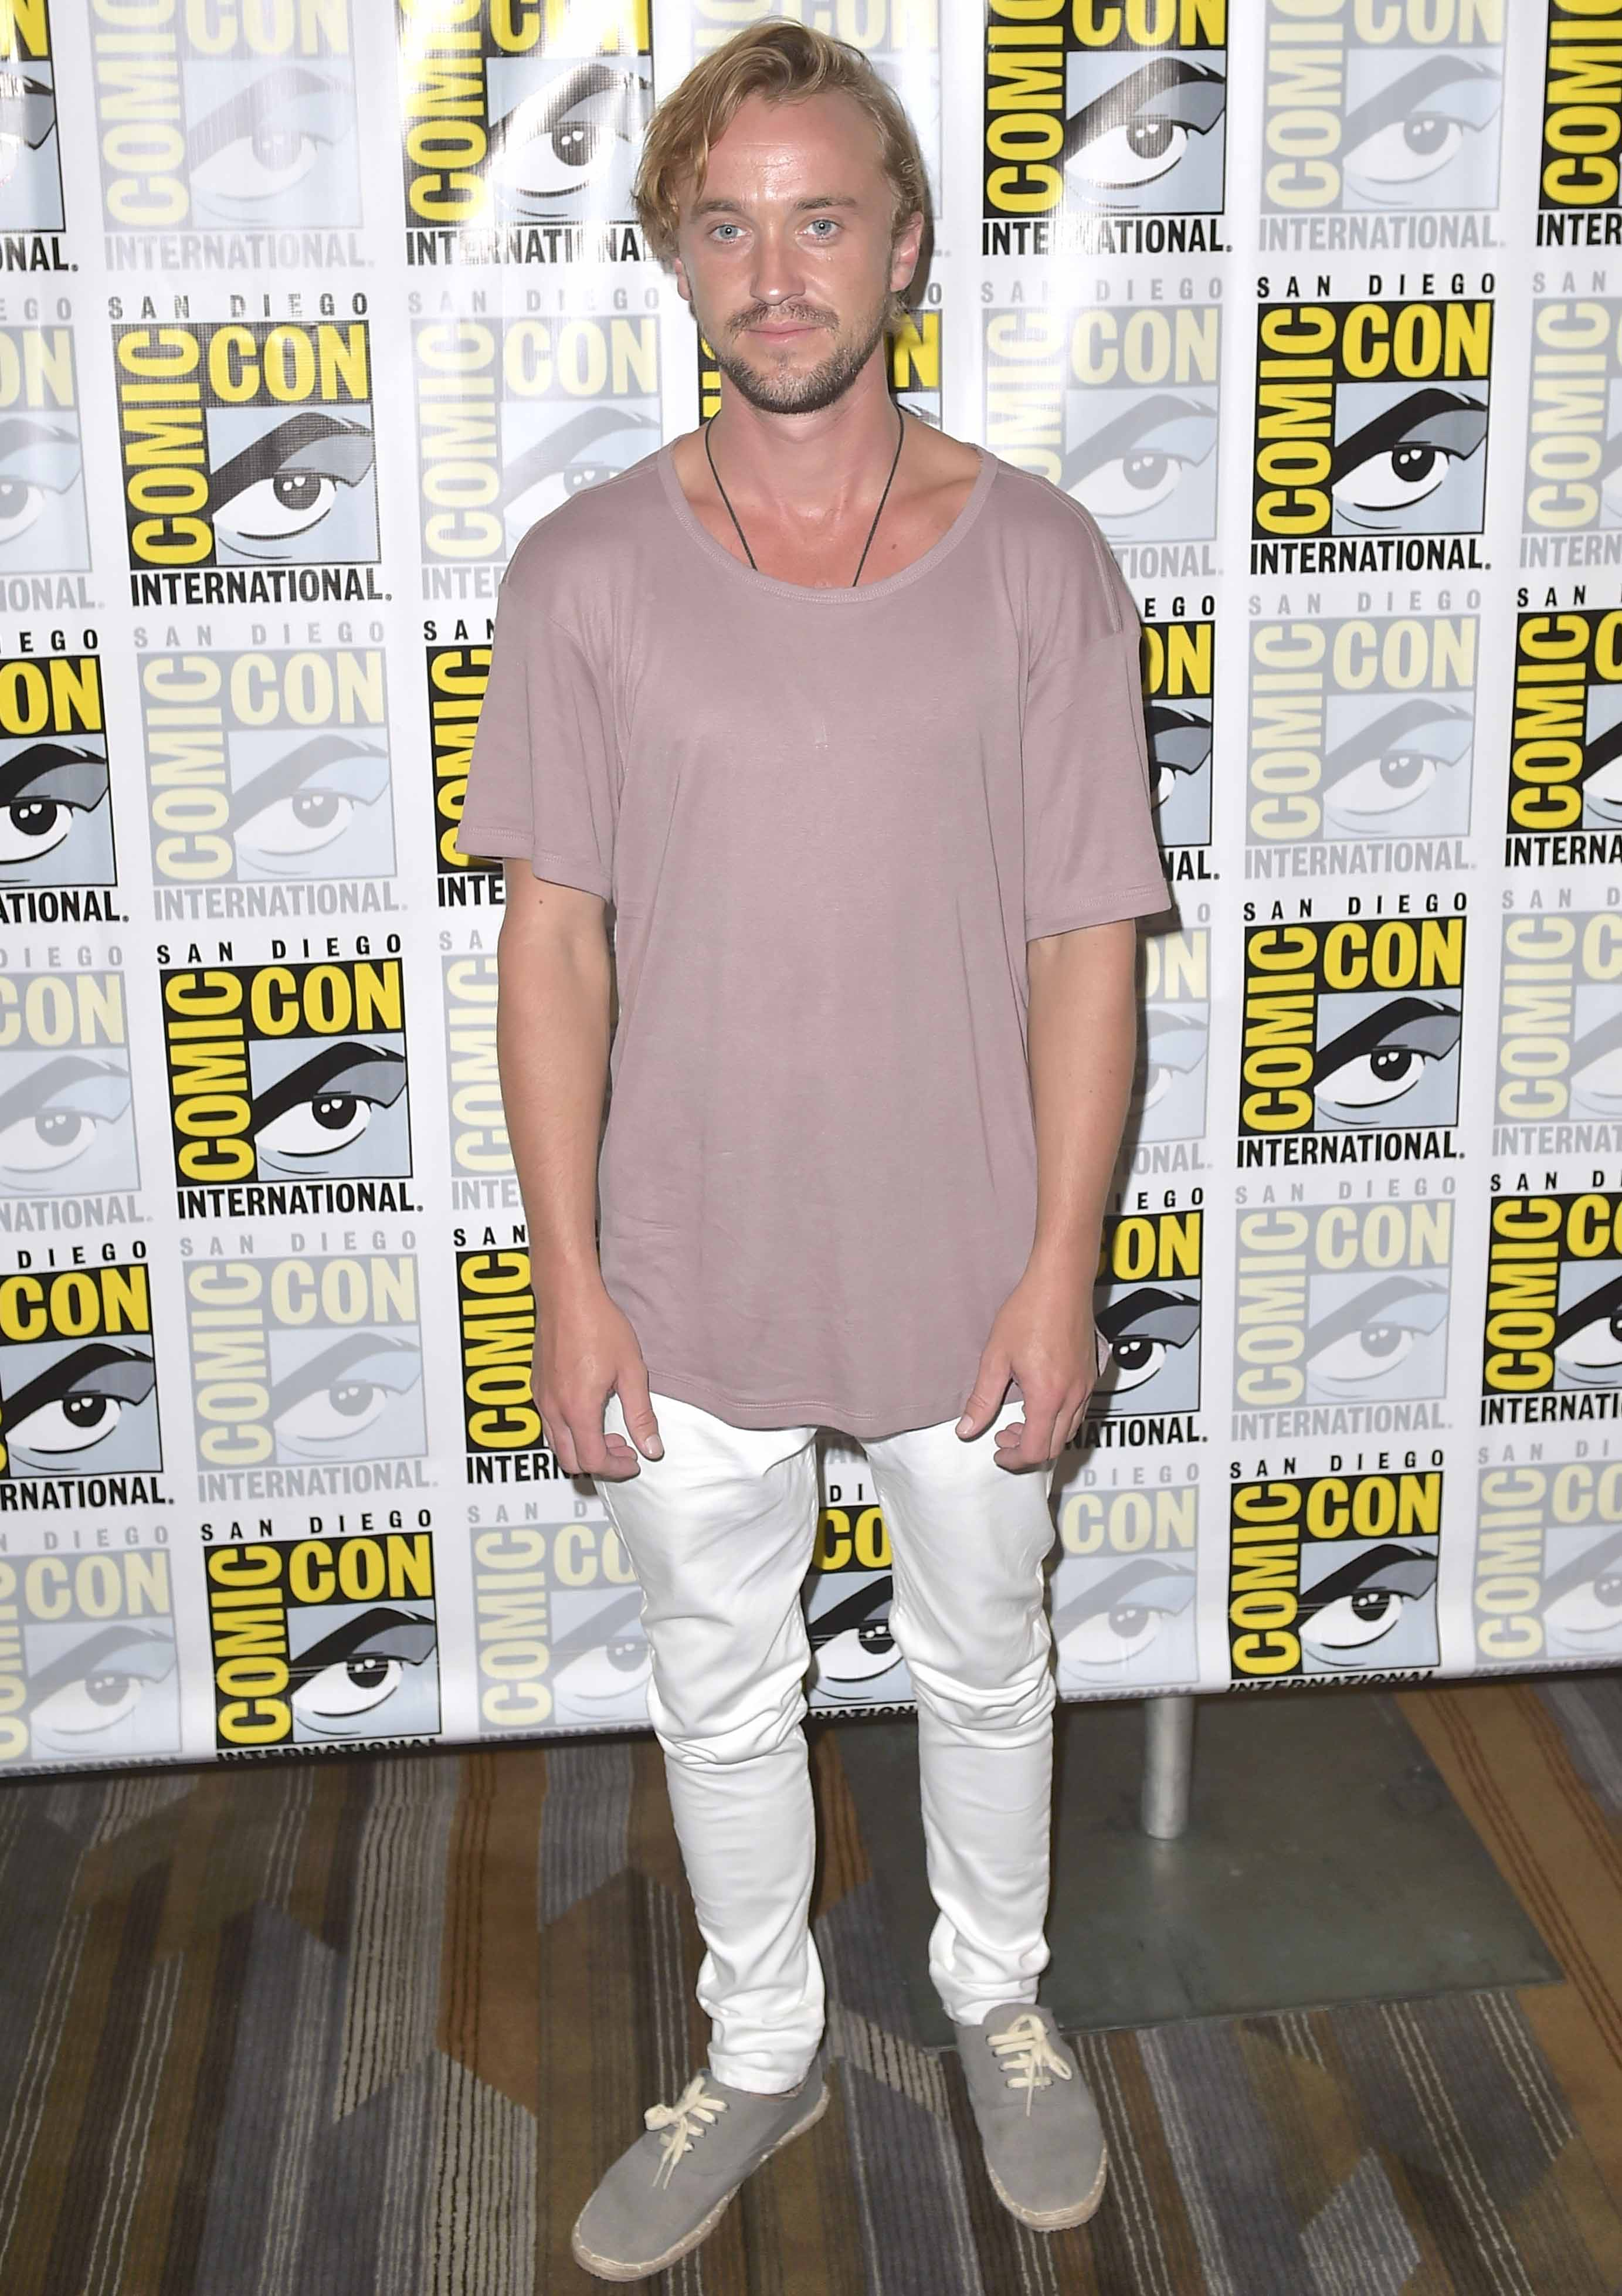 Get The Look: Tom Felton's Casual Cool Look At Comic-Con 2016